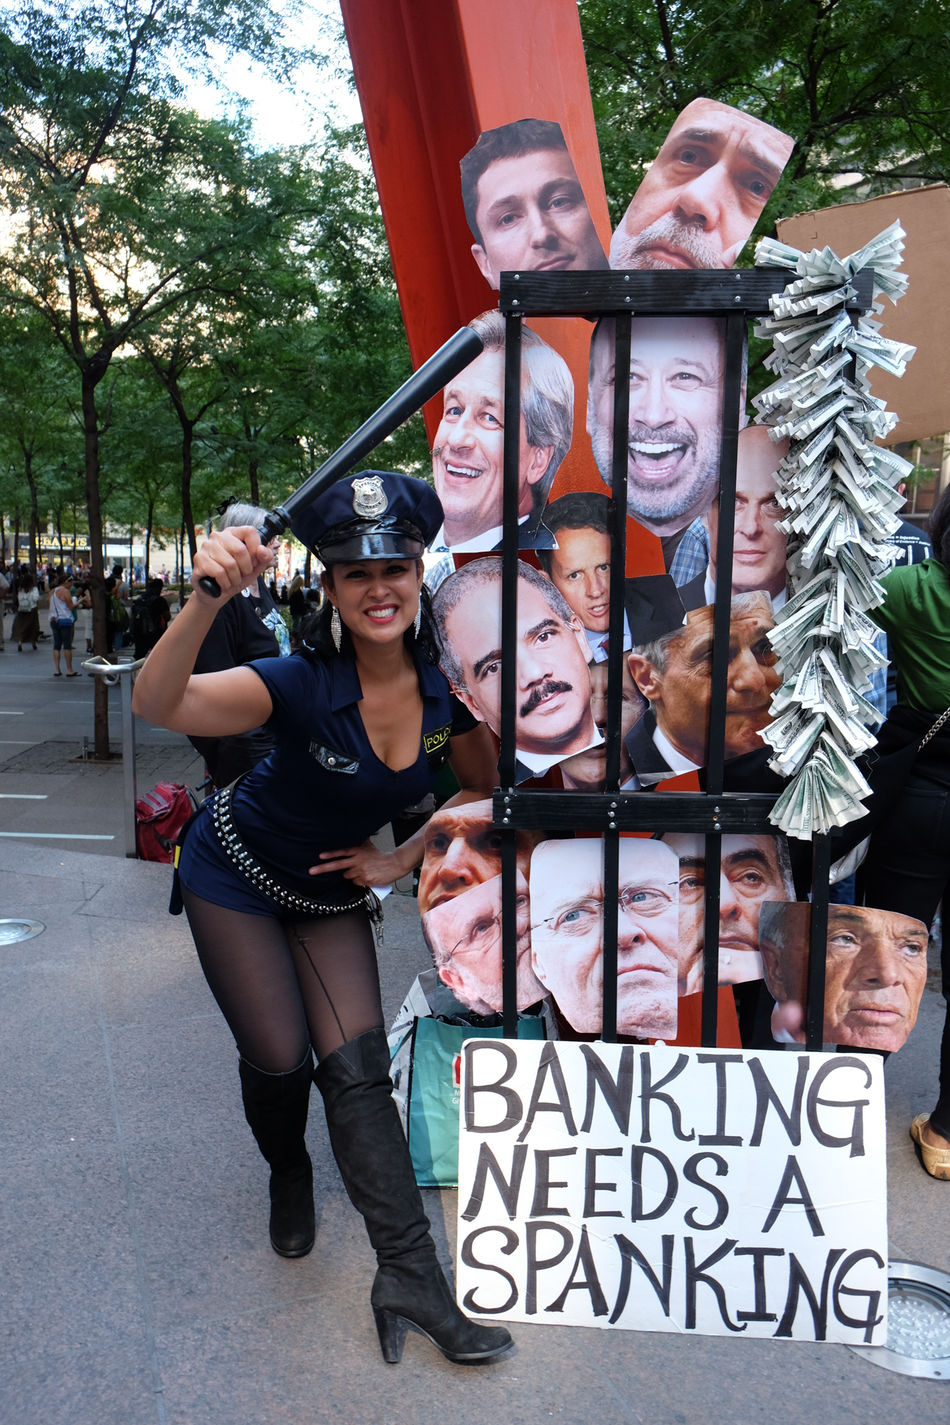 At the five year anniversary of Occupy Wall Street. Signs galore, teach-ins. The movement continues. 5 Year Anniversary Activism Art Commentall Financial District  Lower Manhattan Manhattan NY Occupy Wall Street OWS Political Activism Political Commentary Zuccotti Park